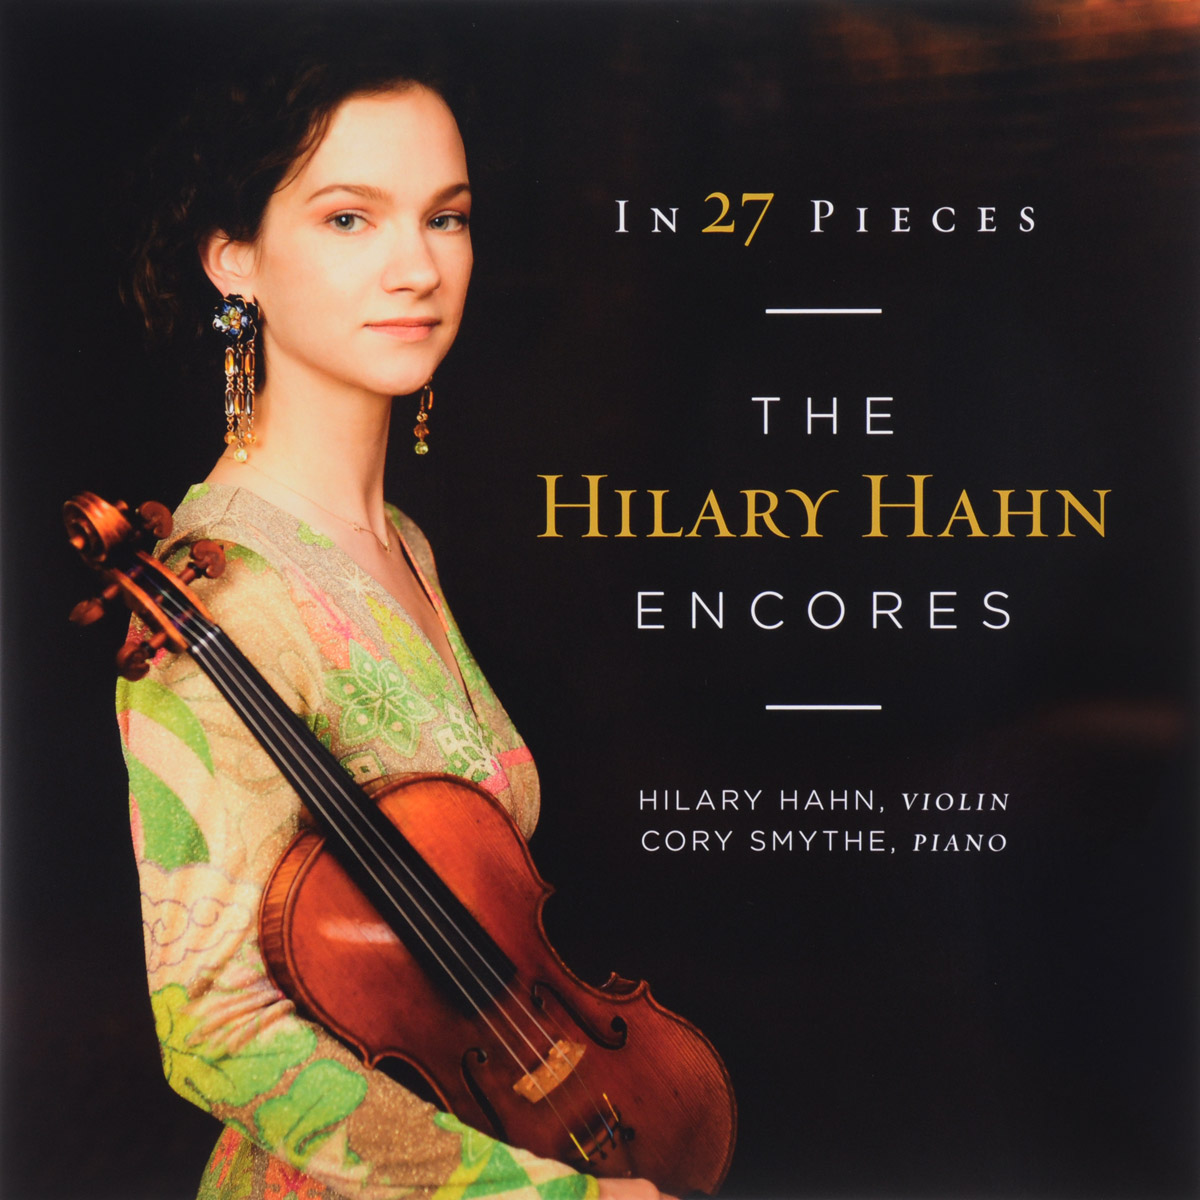 лучшая цена Хилари Хан Hilary Hahn. In 27 Pieces The Hilary Hahn Encores (2 LP)